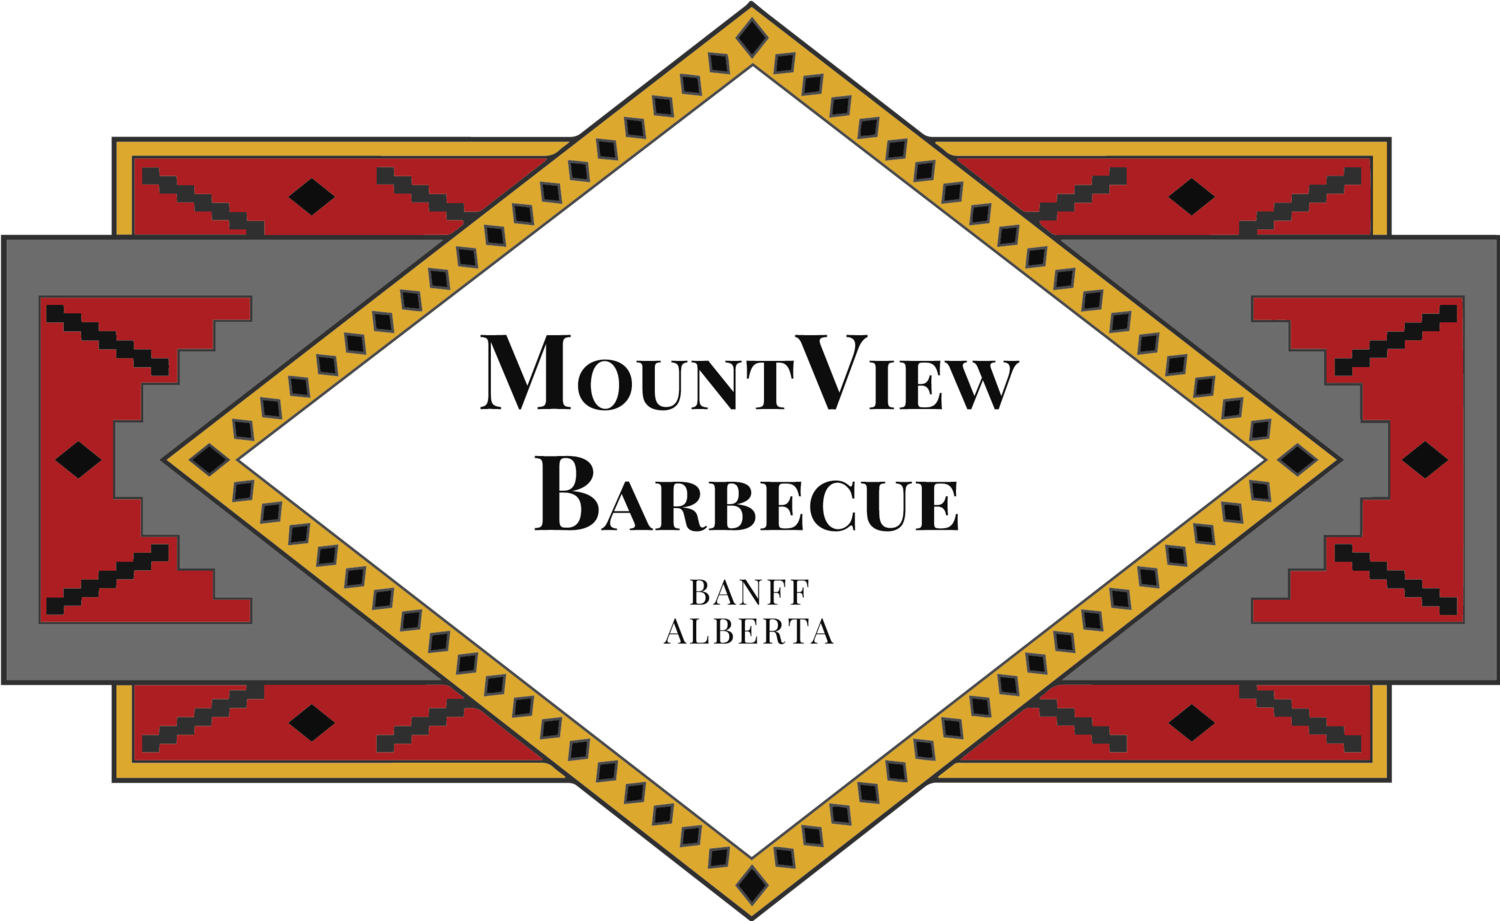 Mountview BBQ